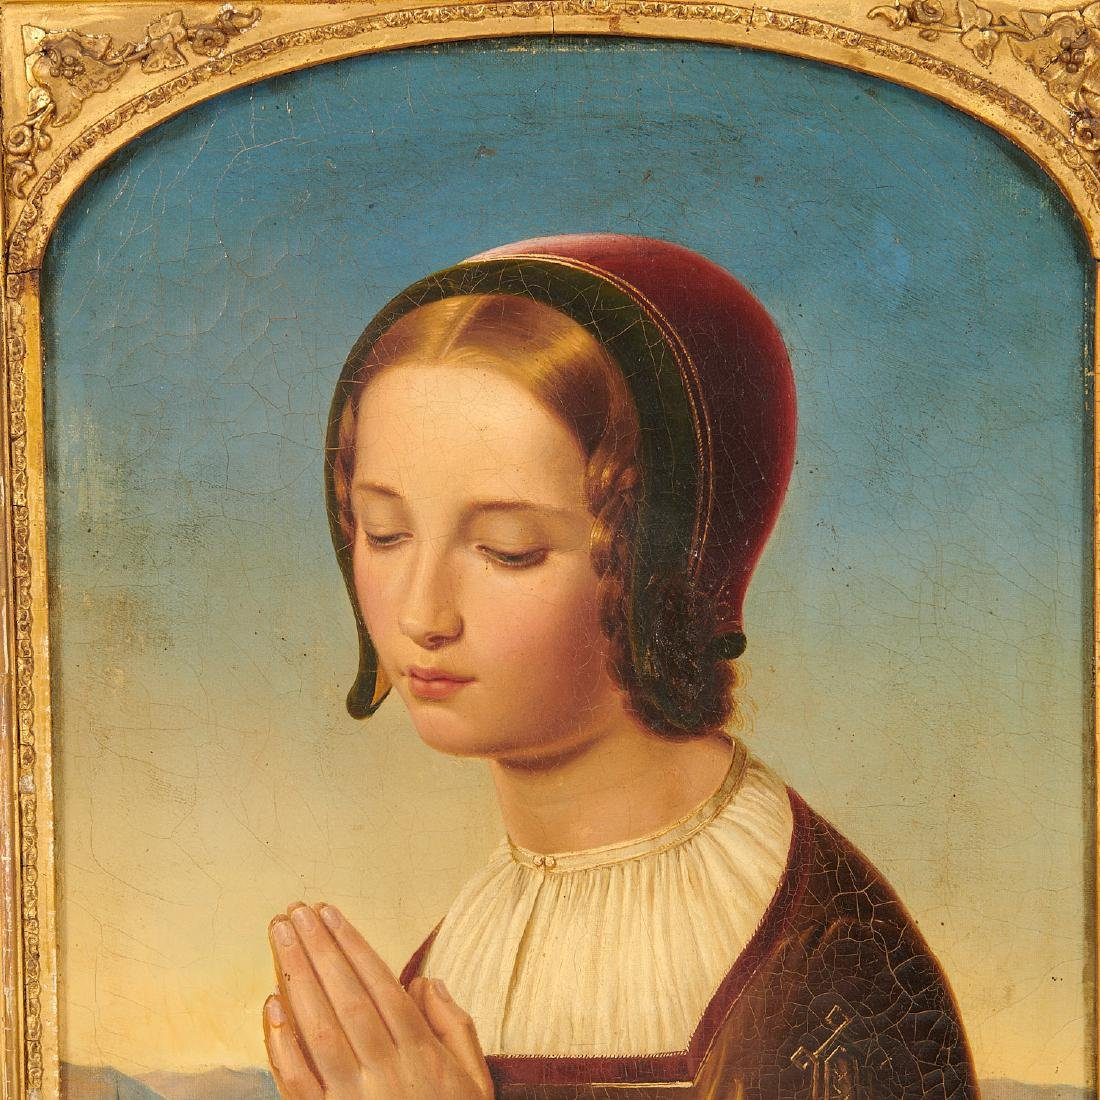 Giovanni Bellini (manner of), painting - 2